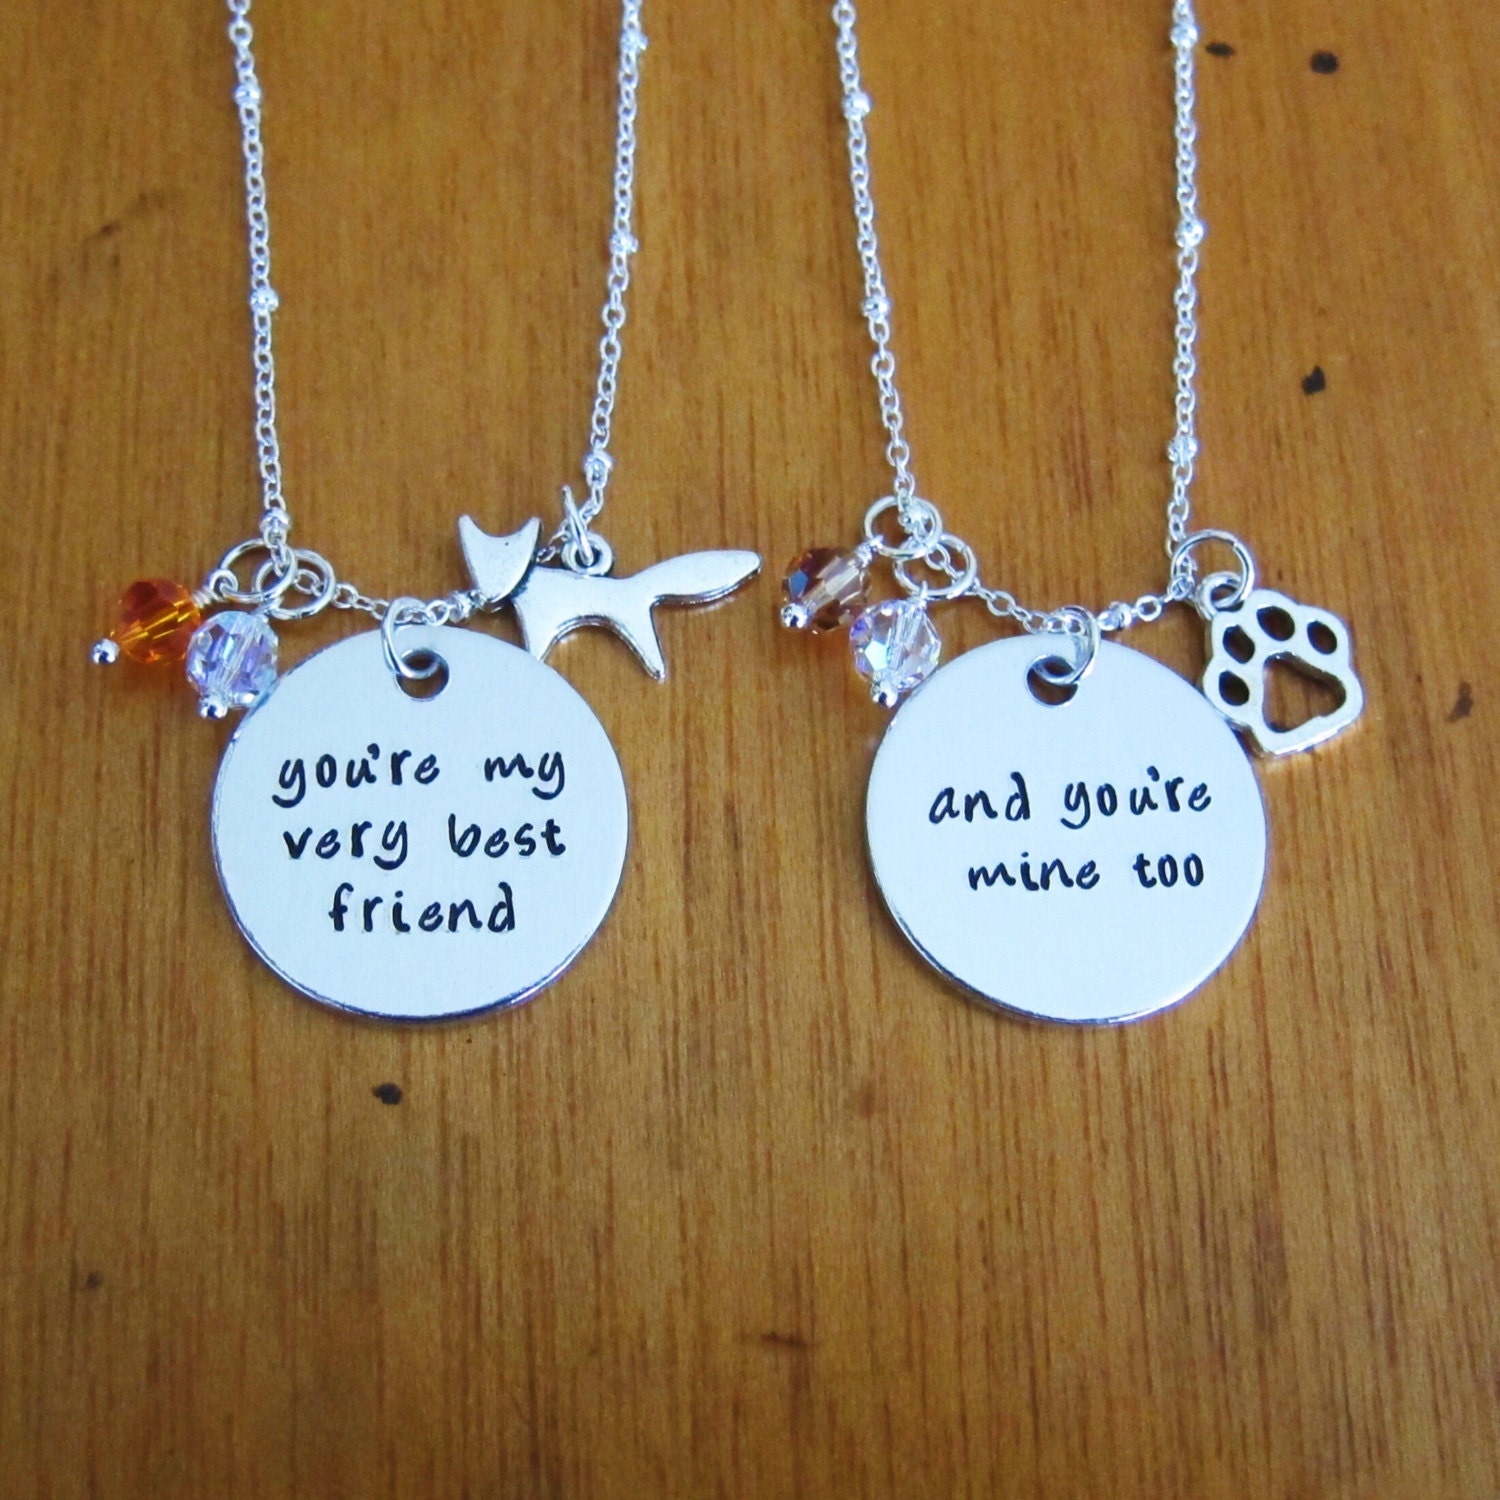 hound and fox friendship necklaces you re my